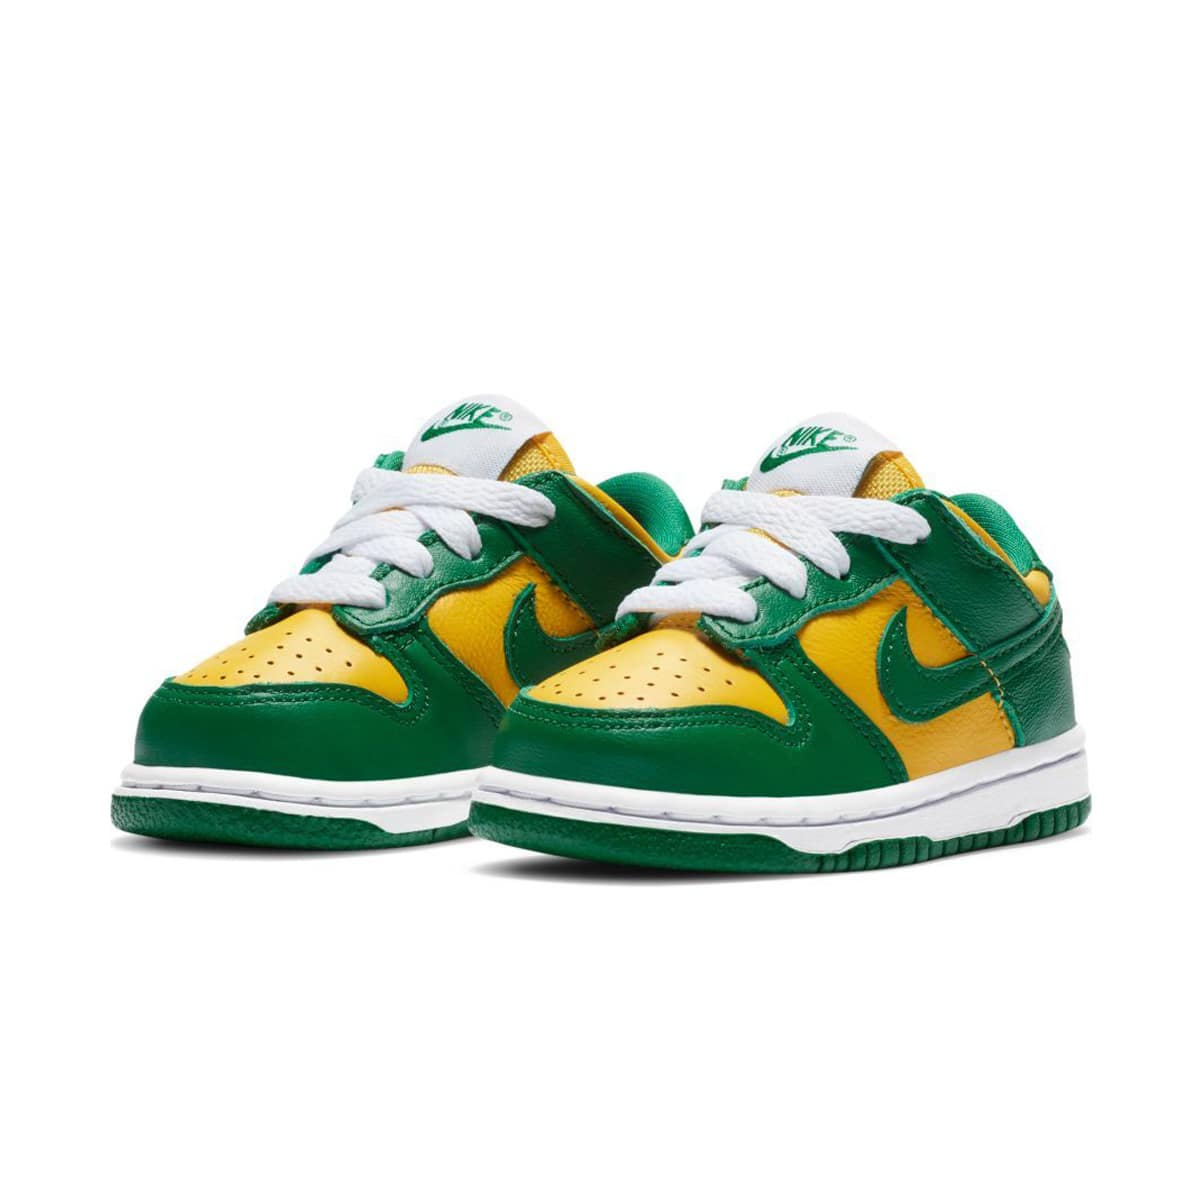 NIKE DUNK LOW SP (TD) VARSITY MAIZE/PINE GREEN-WHITE 20SU-S_photo_large